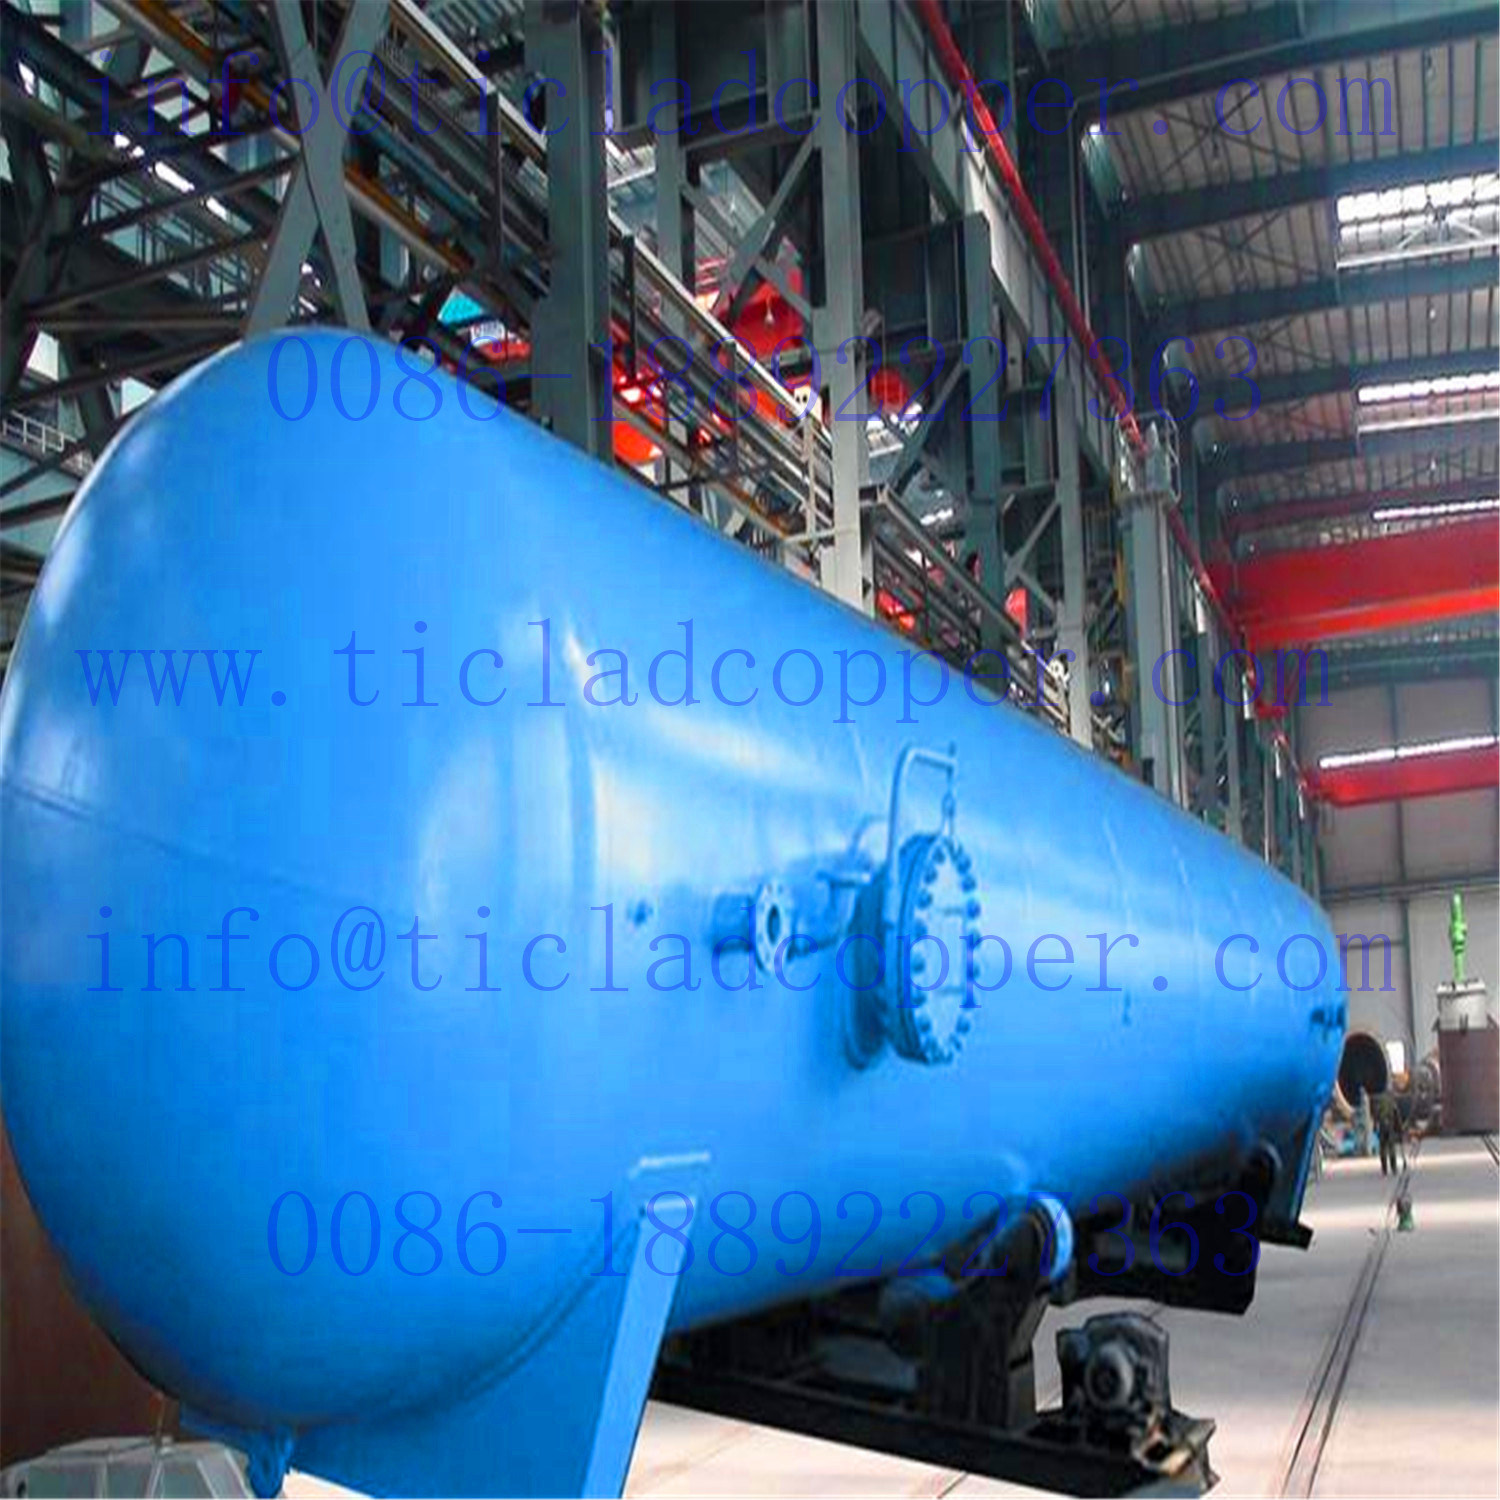 Reliable Industrial Steel Pressure Vessel pictures & photos